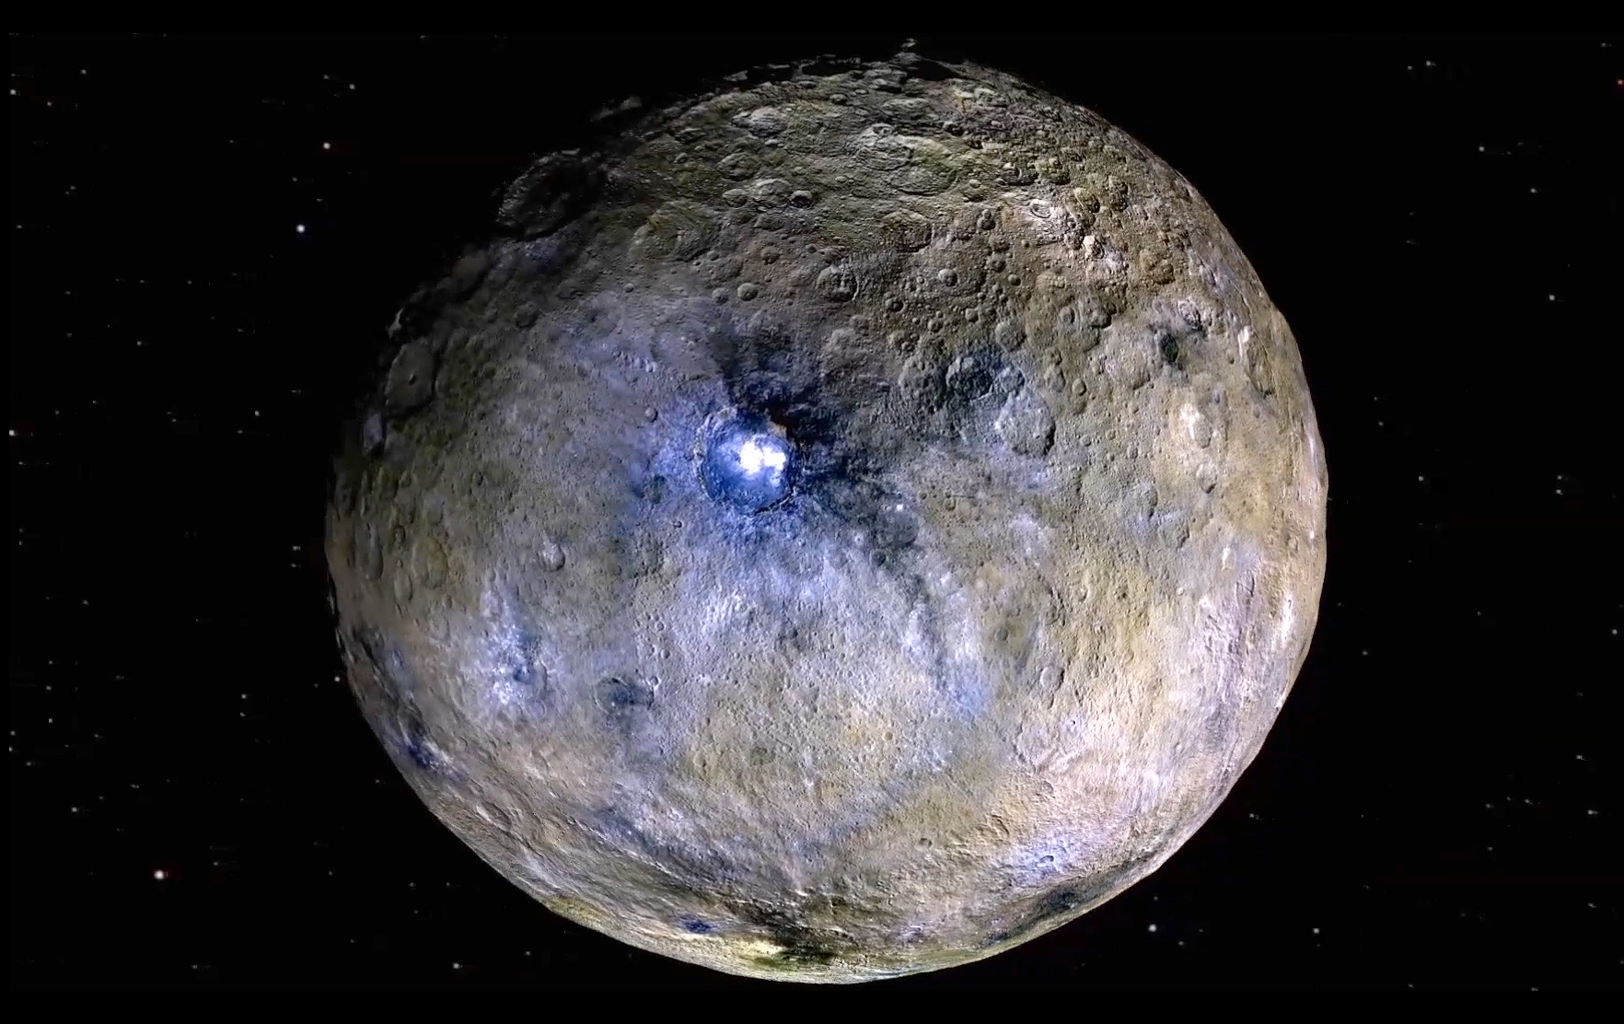 Space Images | Ceres Rotation and Occator Crater (Video)